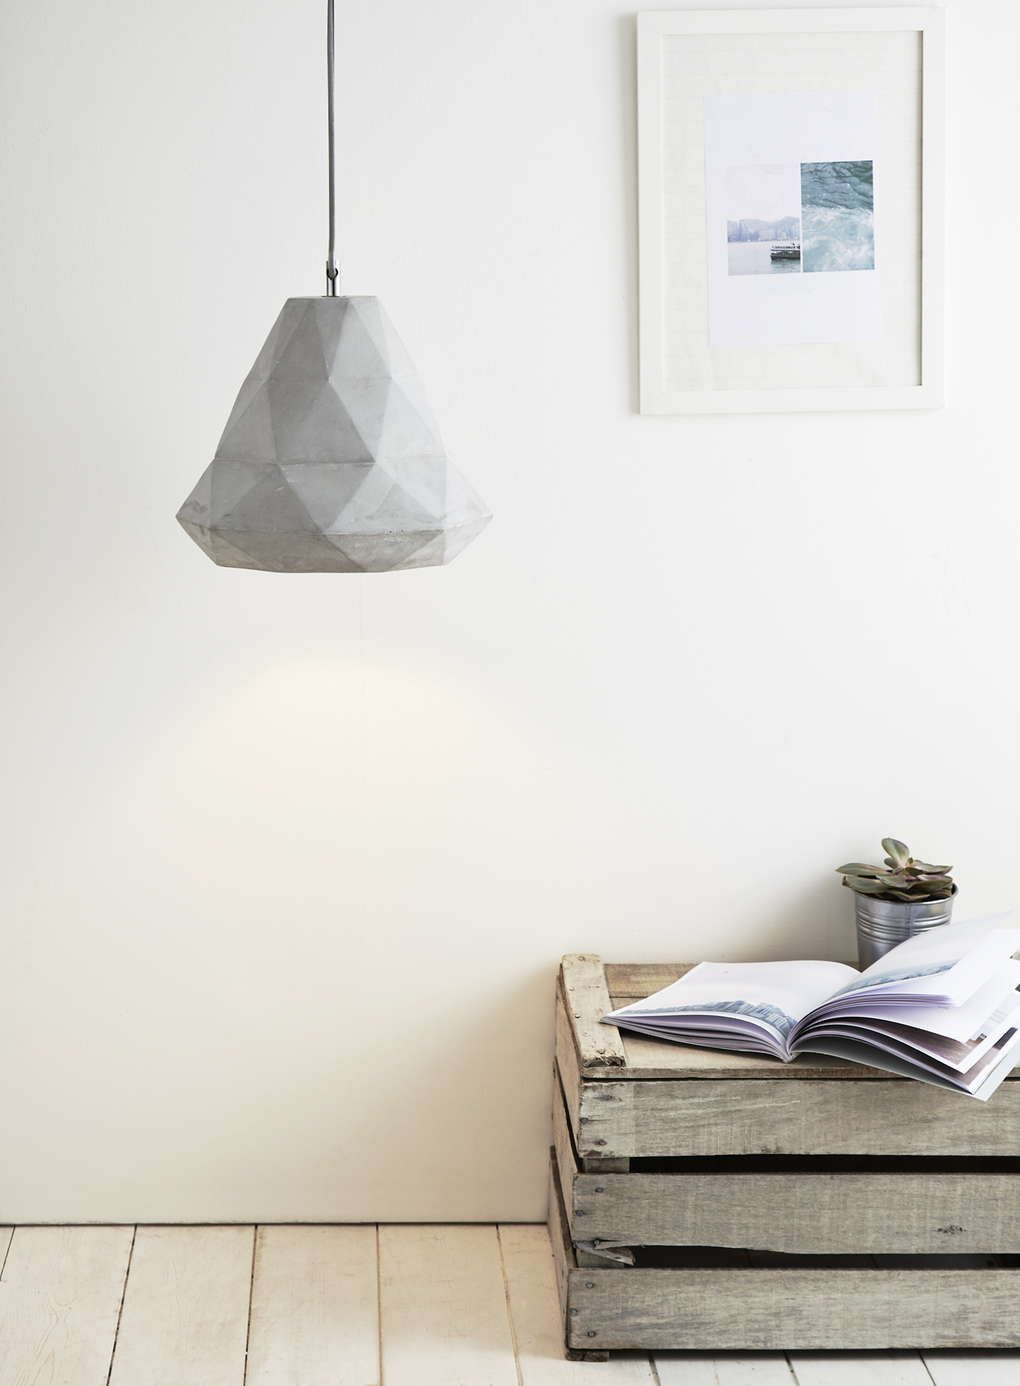 Grey aero pendant light from bhs home pinterest bhs pendant grey aero pendant light from bhs home pinterest bhs pendant lighting and lights aloadofball Images